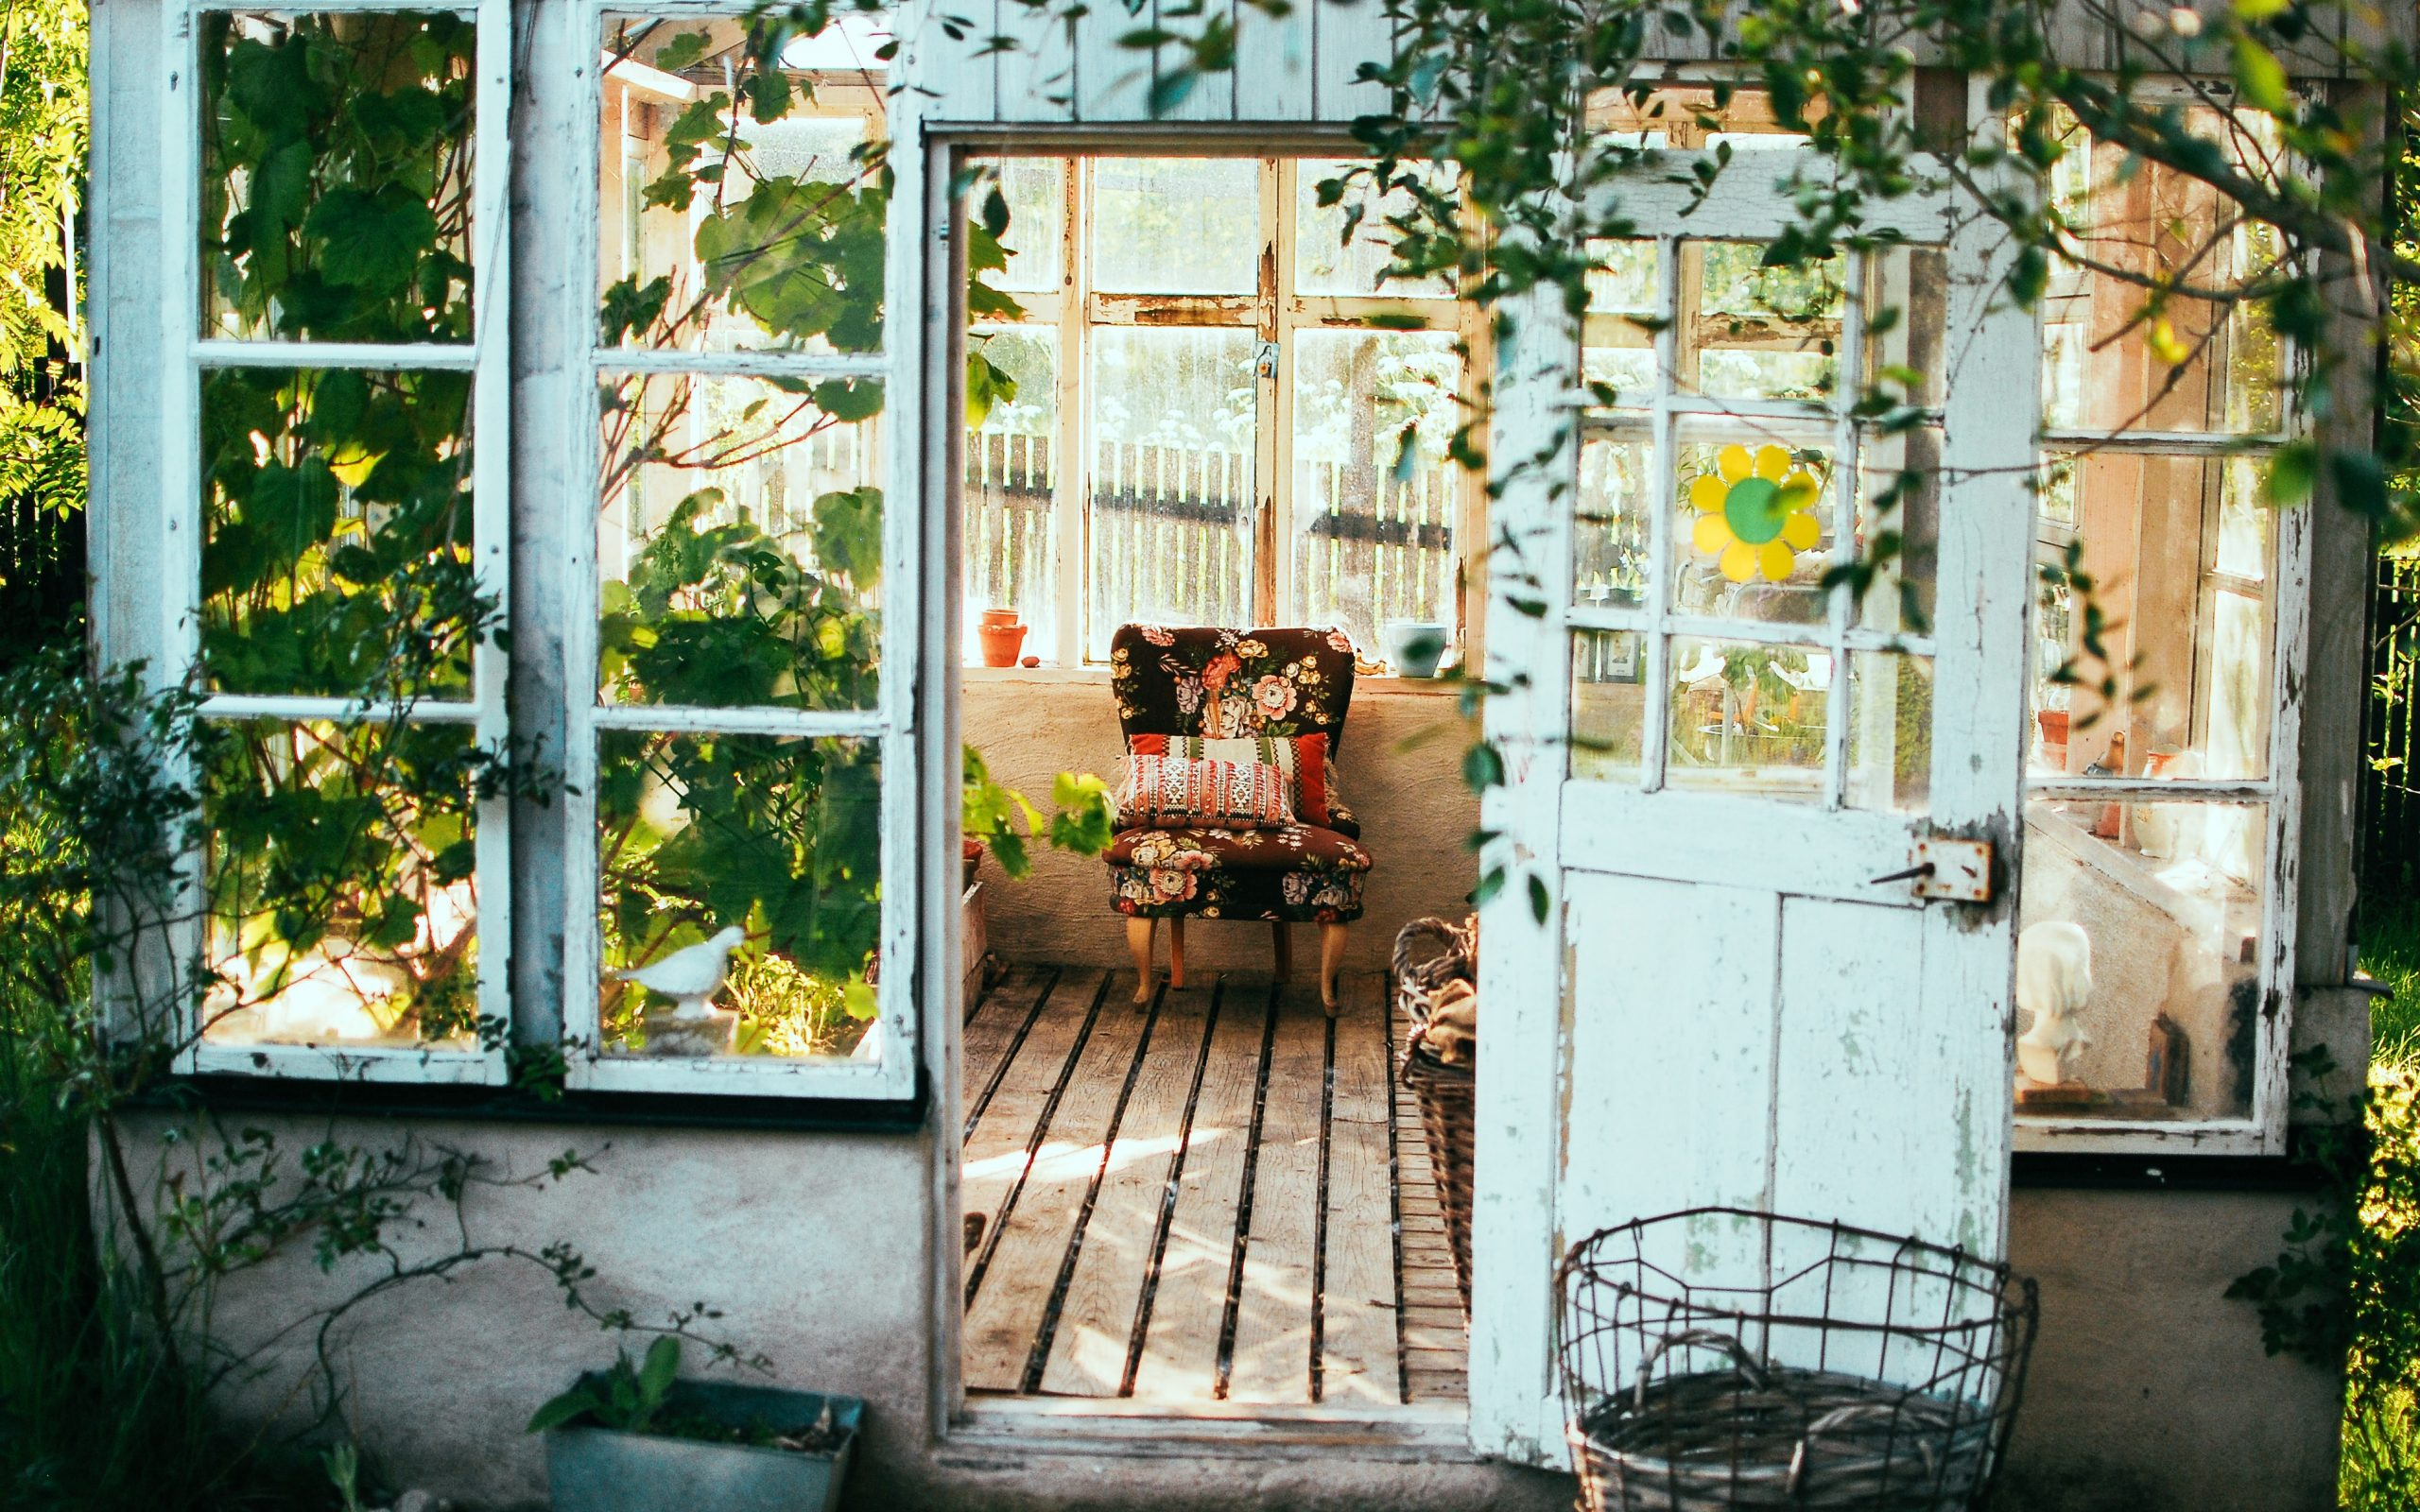 Greenhouse with colorful folding chair